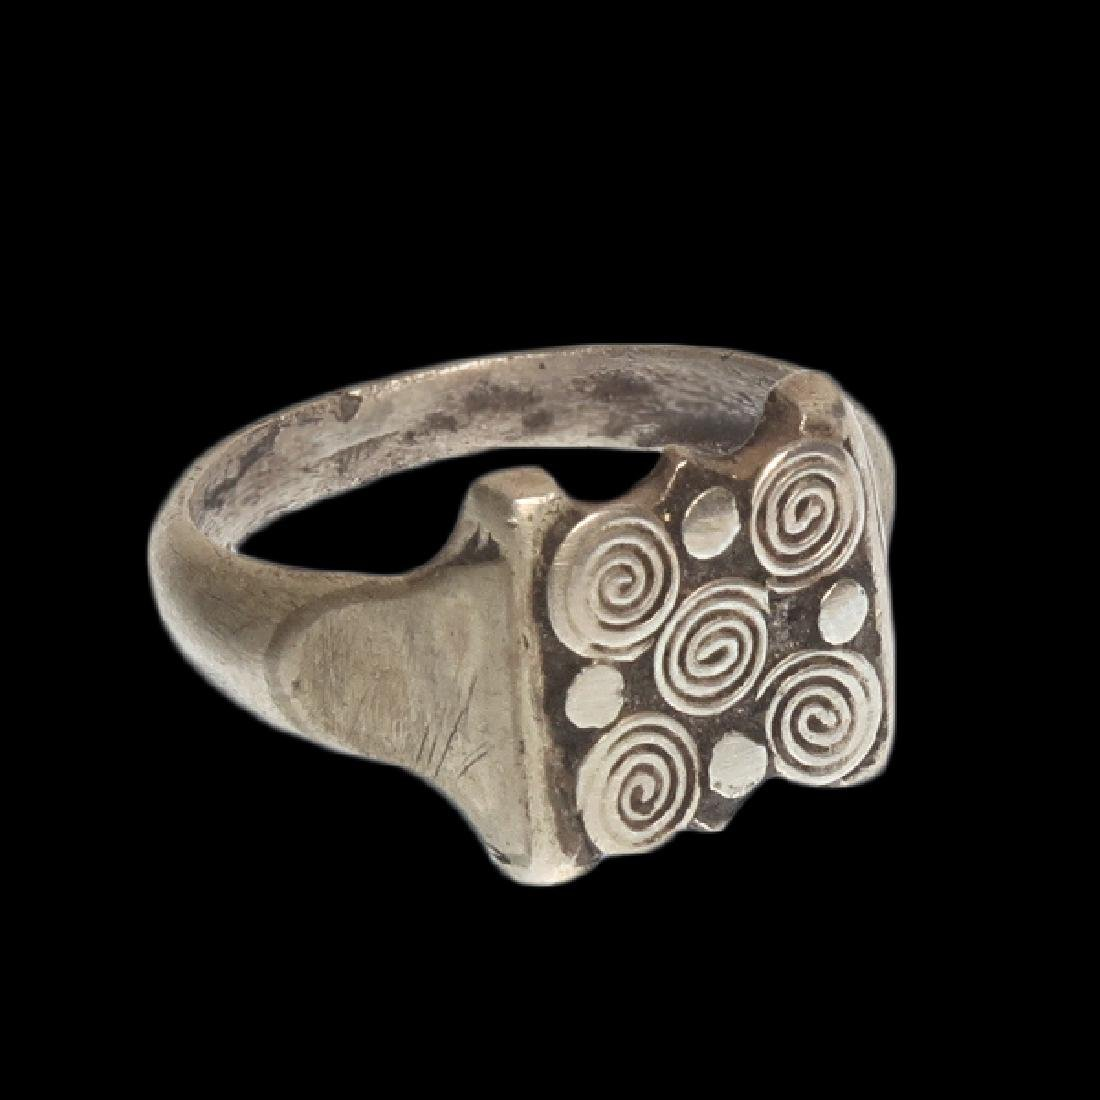 Viking Silver Ring with Spiral Patterns, c. 10th